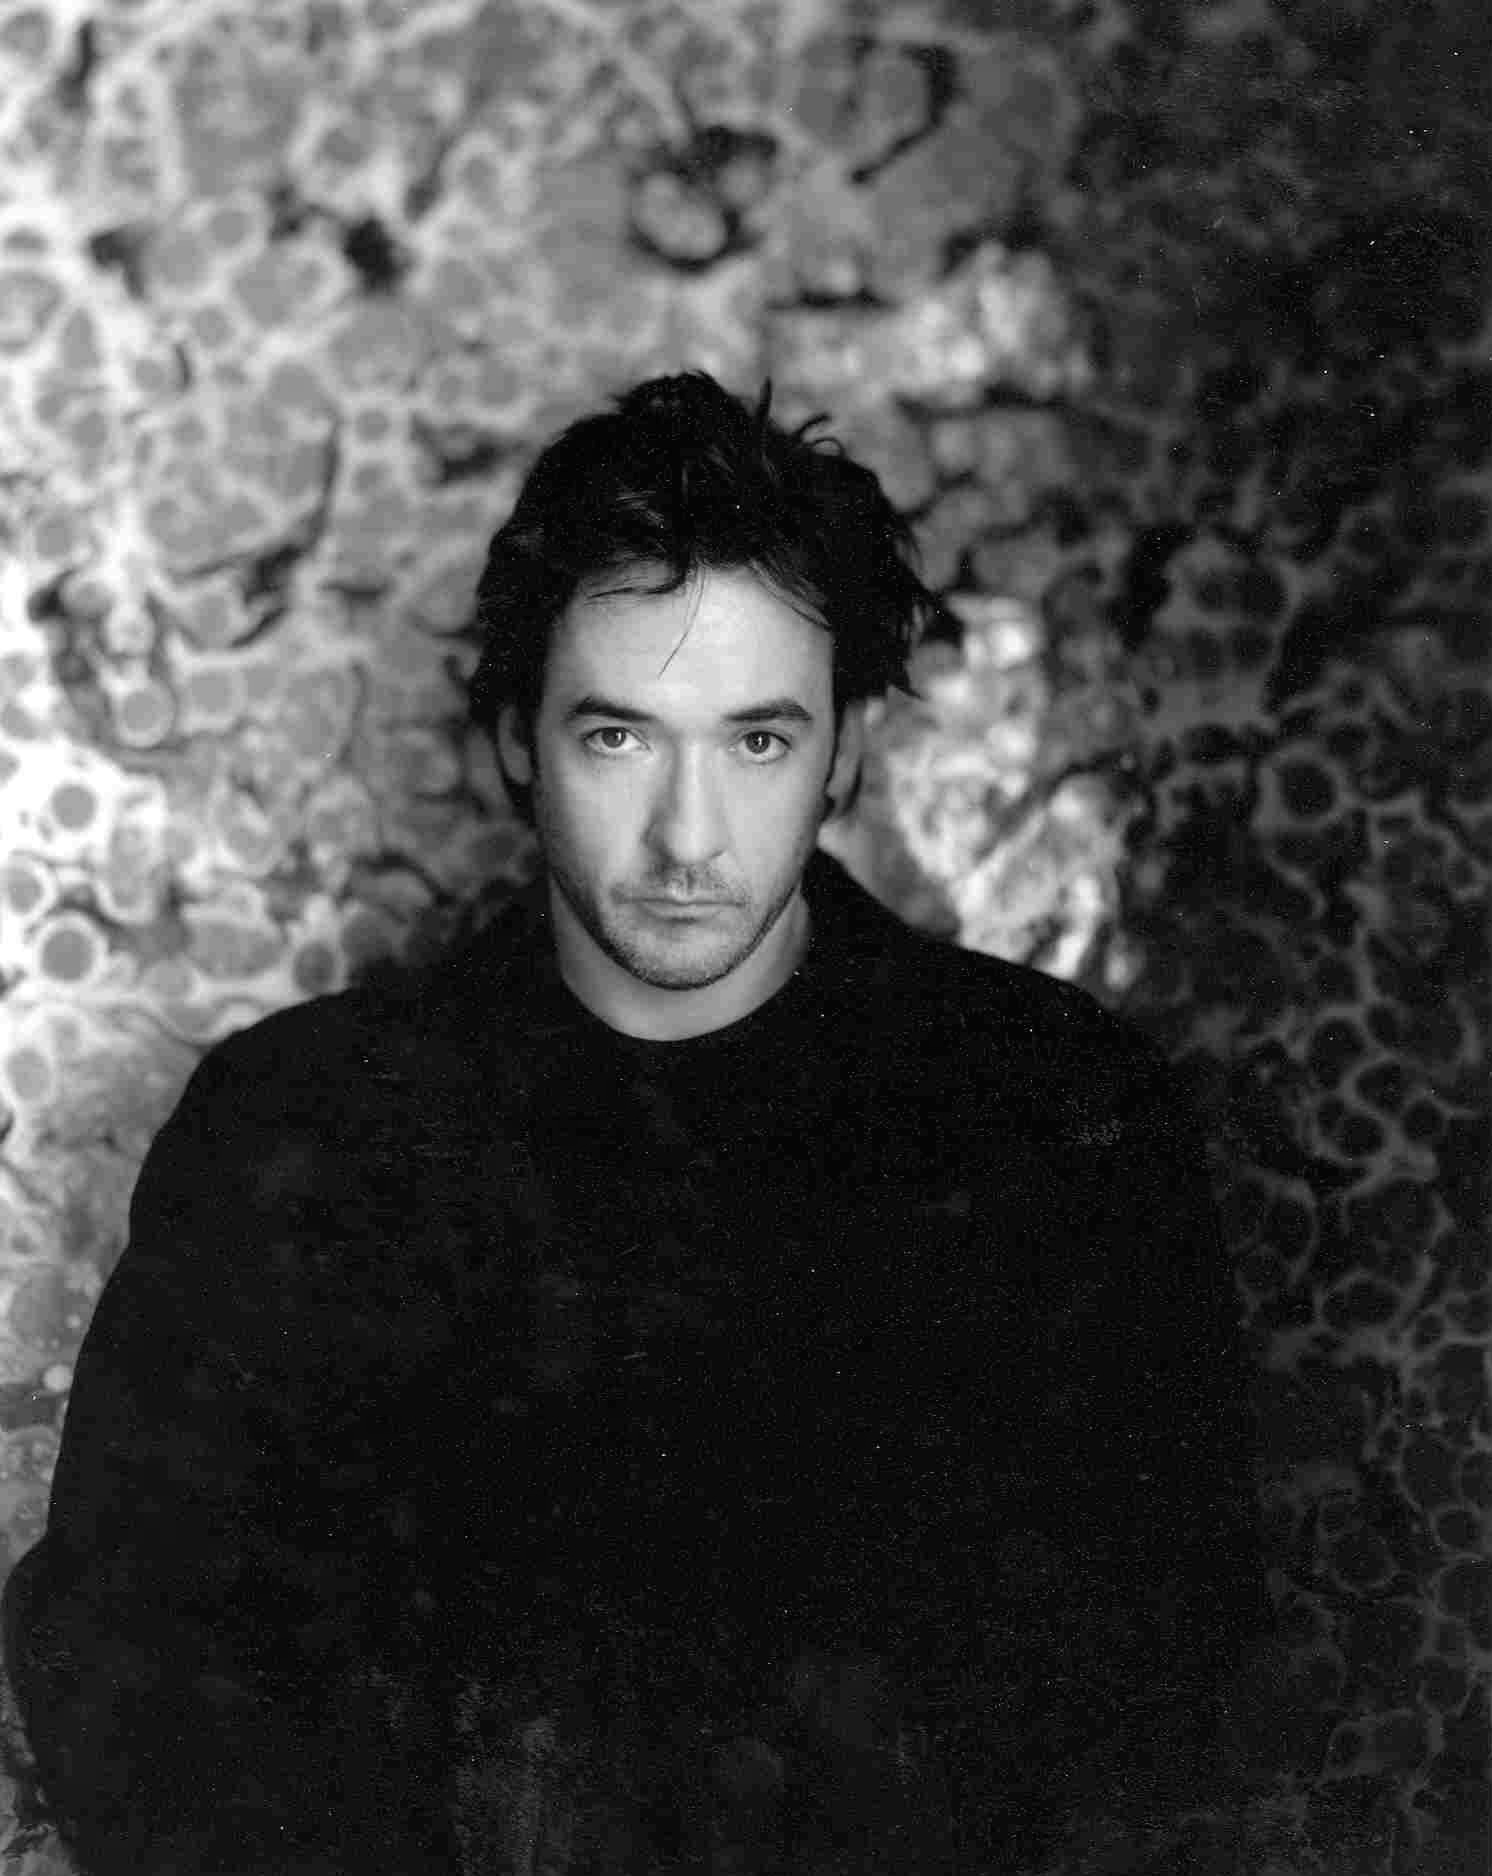 John_Cusack_official_portrait